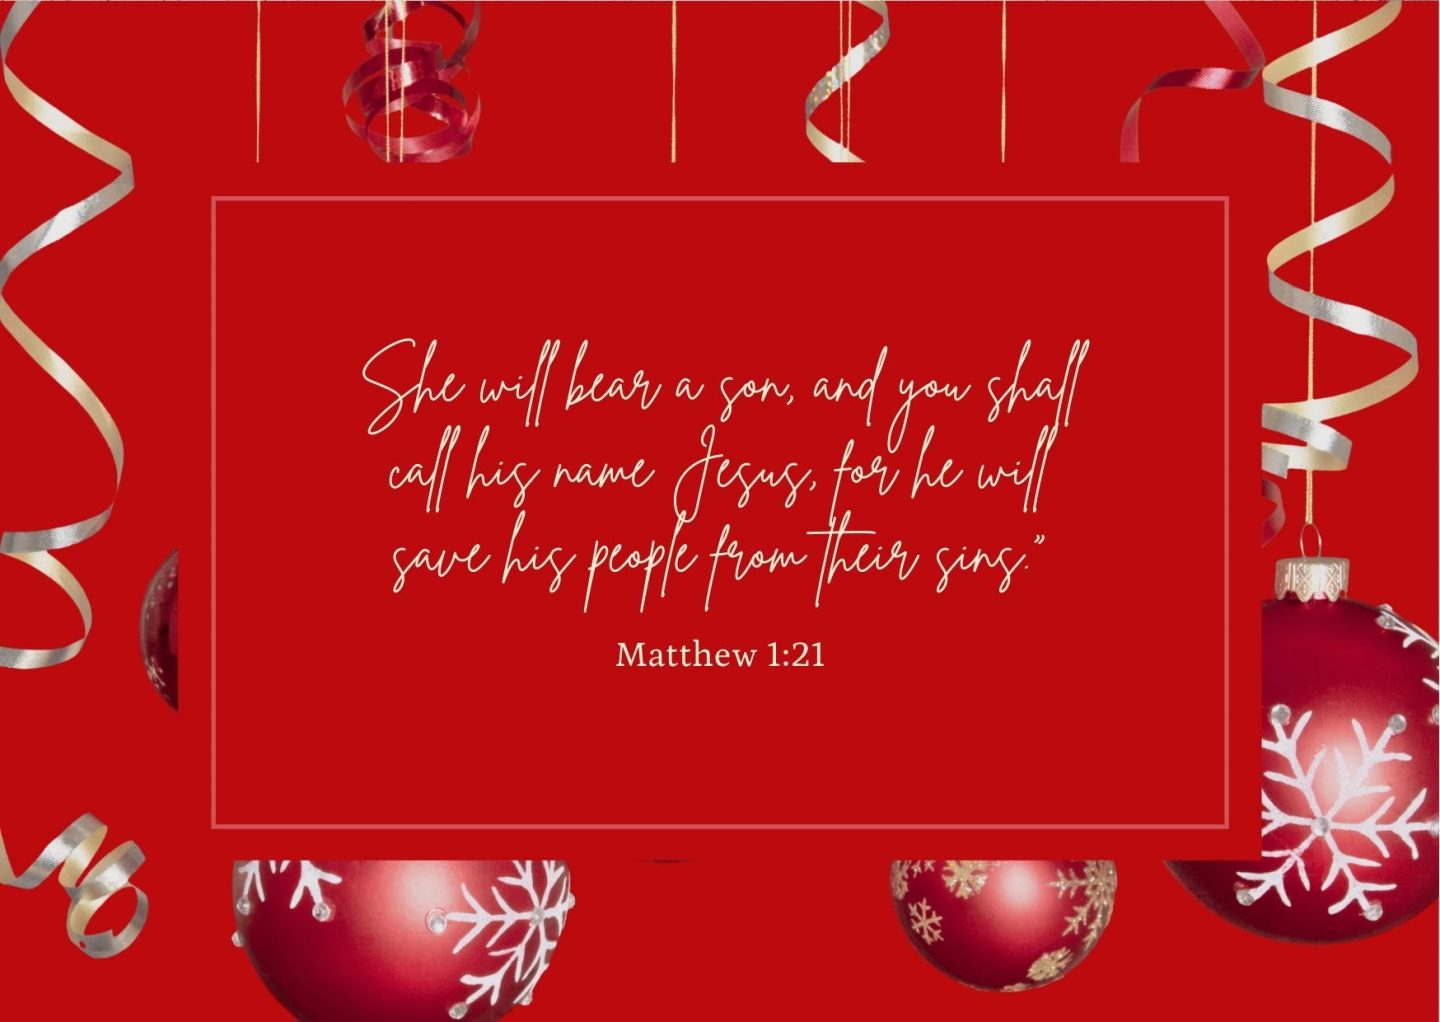 """She will bear a son, and you shall call his name Jesus, for he will save his people from their sins."""" Matthew 1:21"""